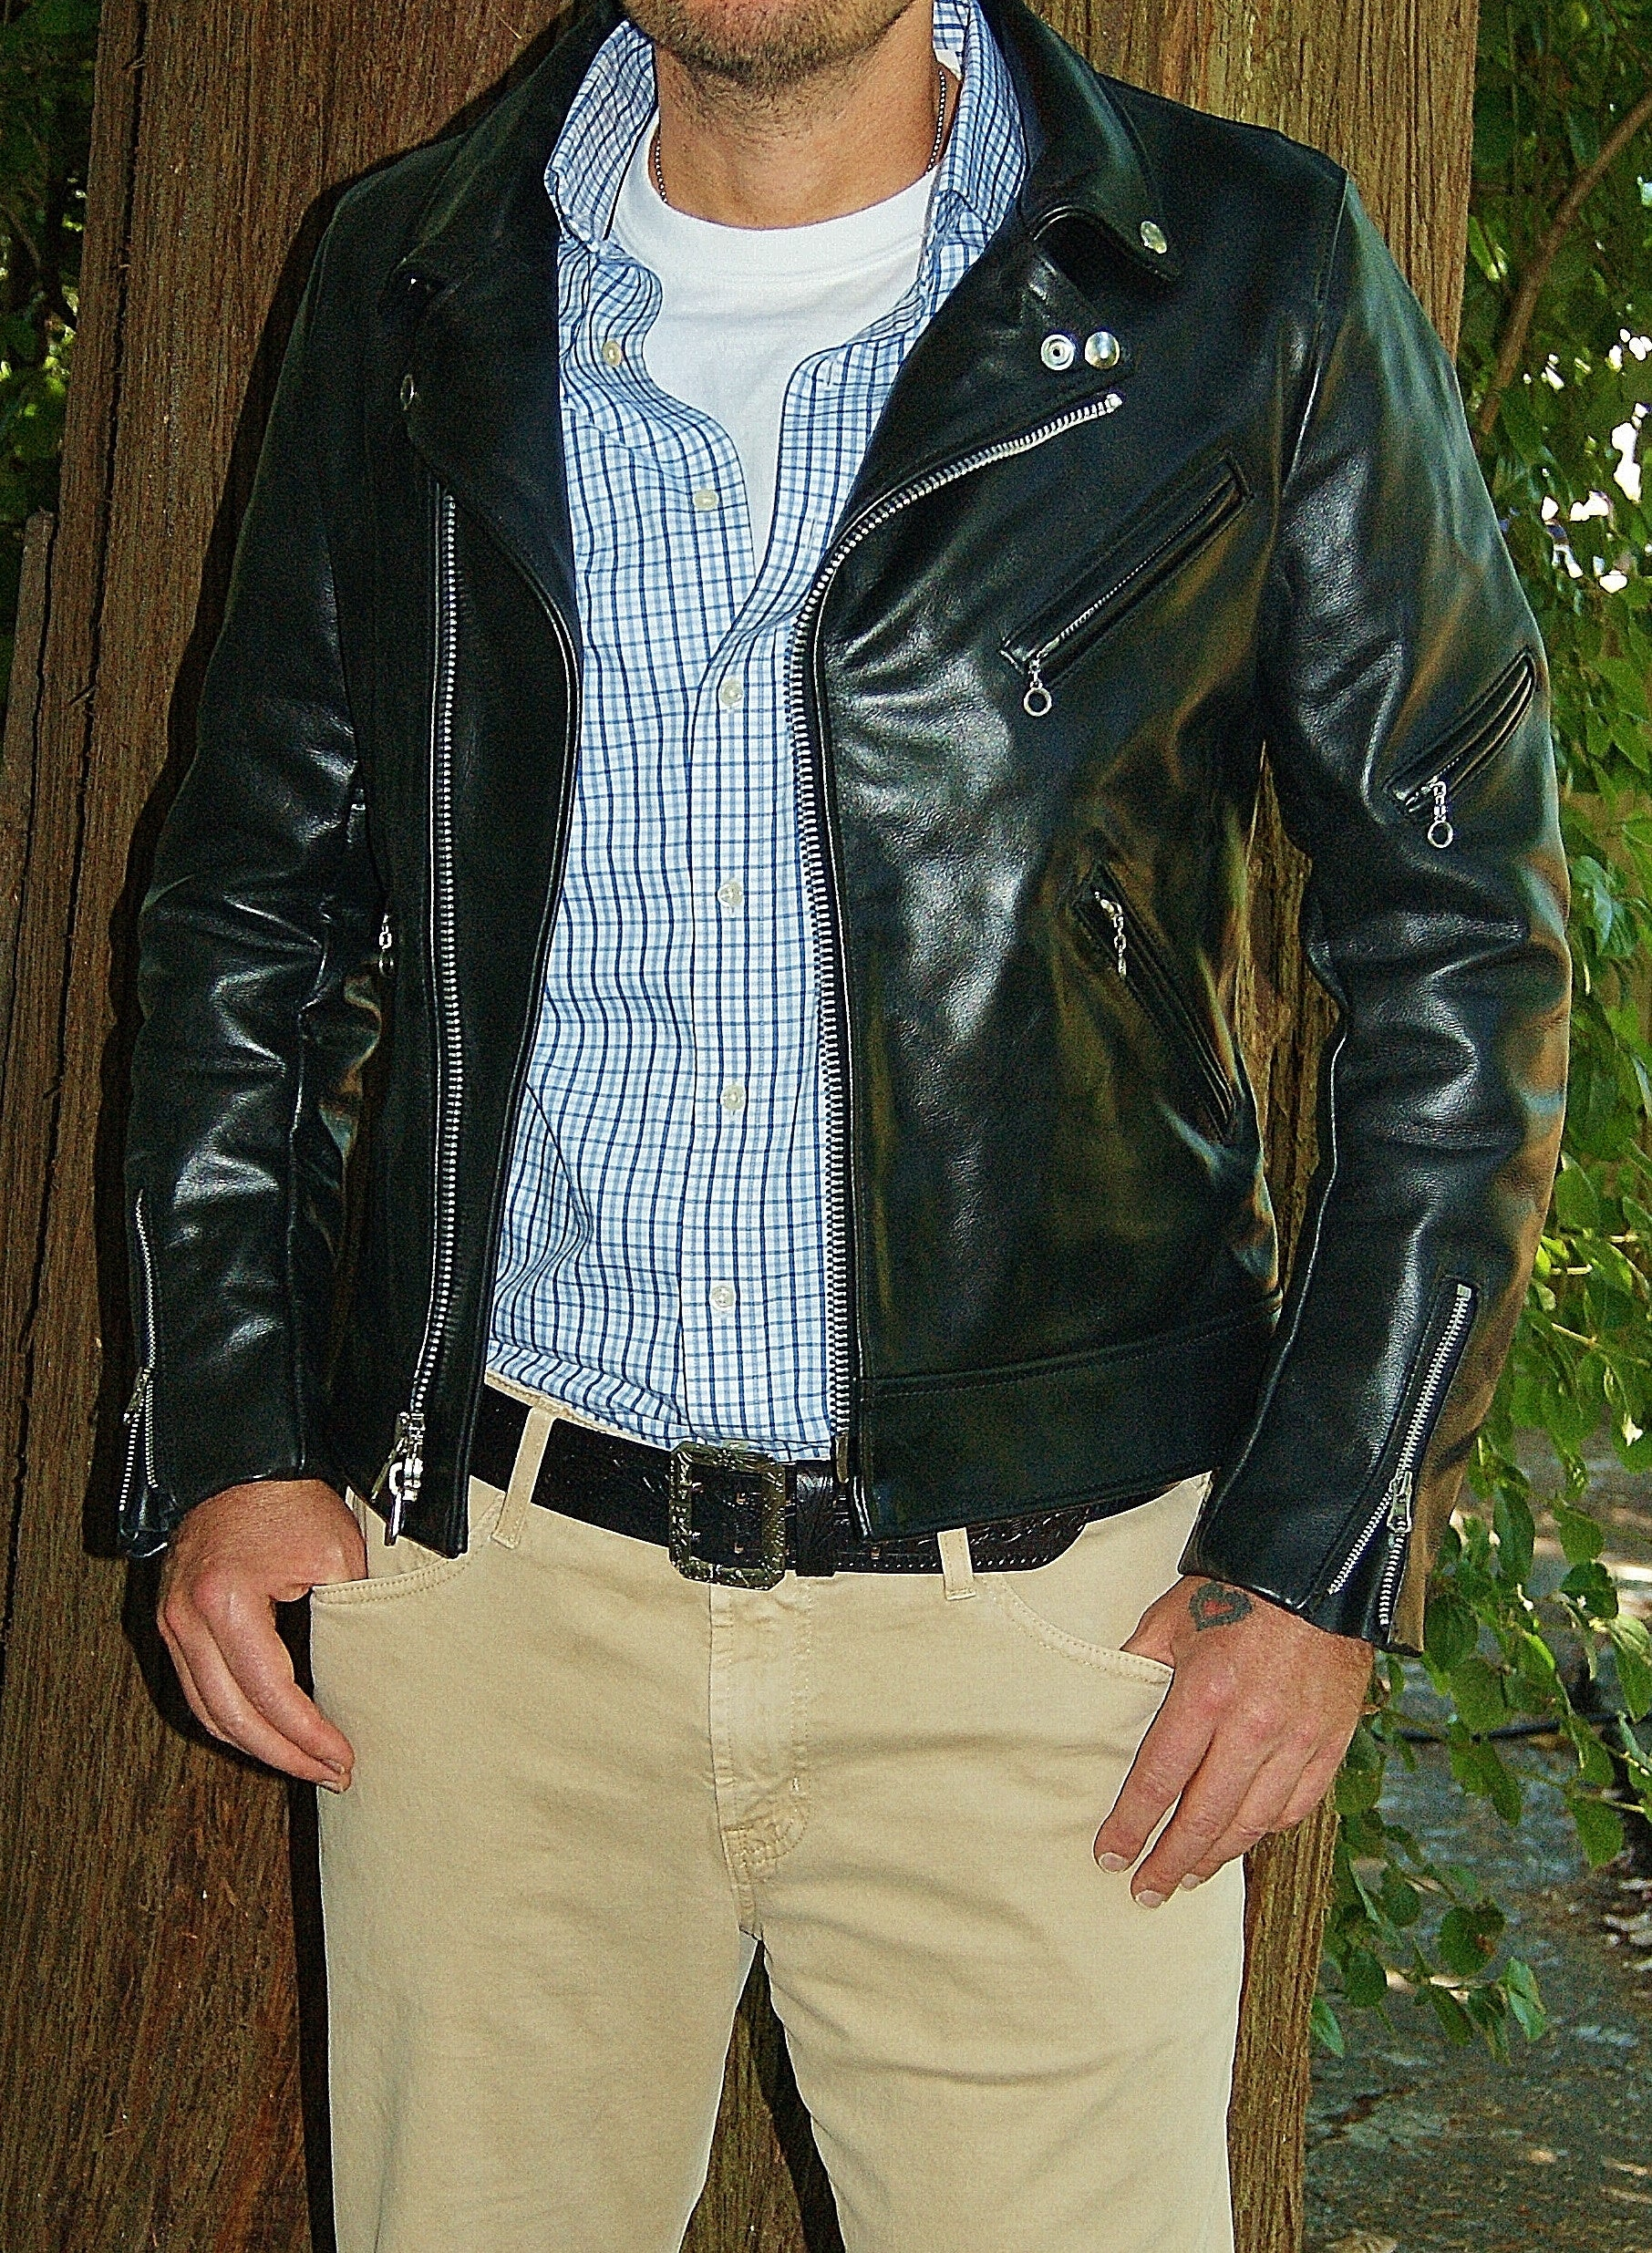 Photo of man modelling Vanson Daredevil., black leather motorcycle jacket. Jacket is unzipped.